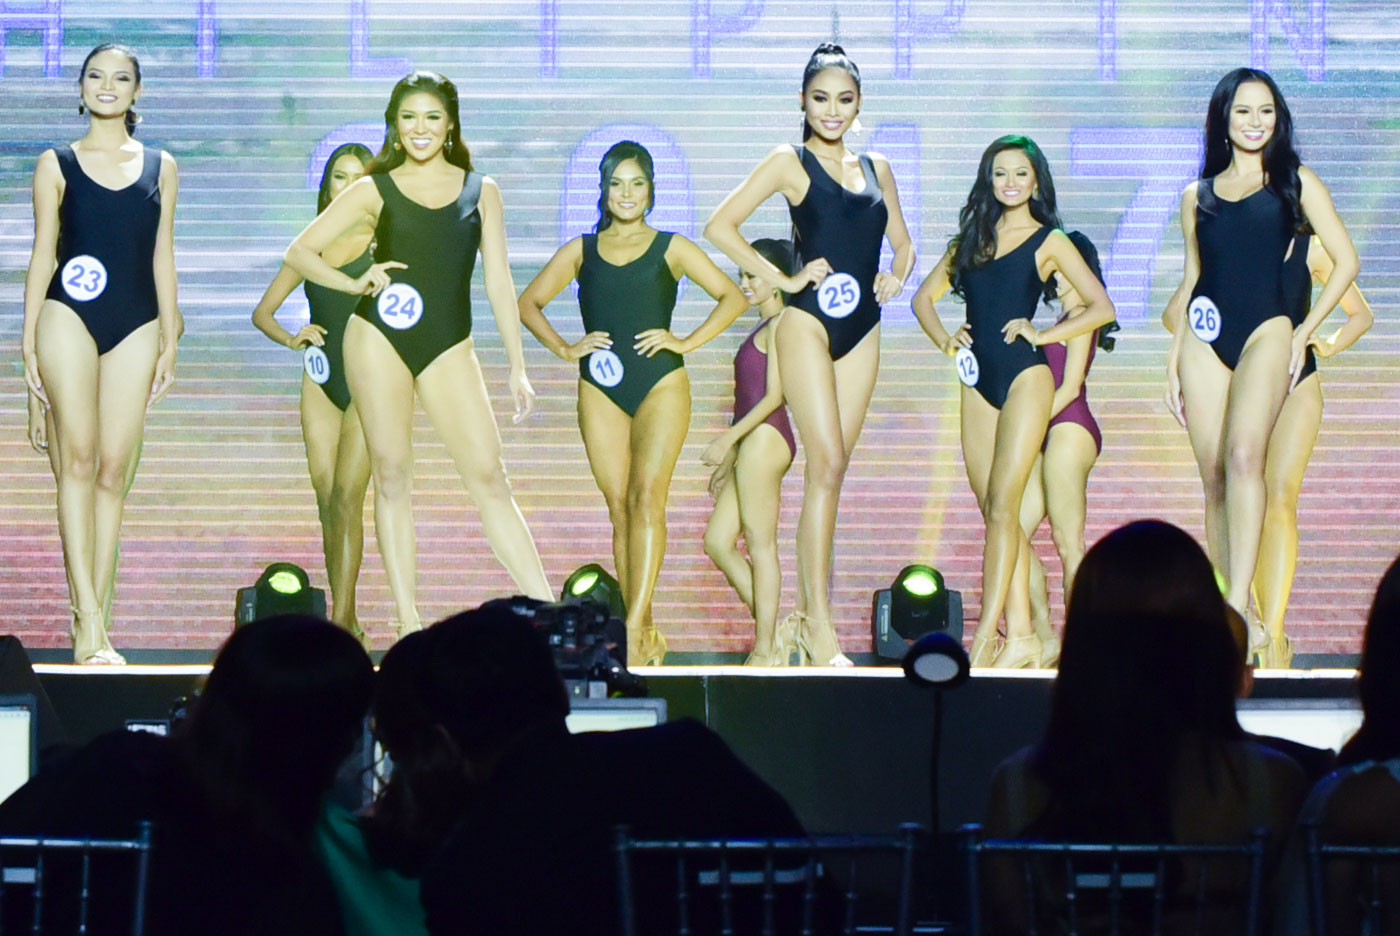 SWIMSUIT COMPETITION. Photographed are #23 Princess Laureano, #24 Zara Carbonell, #25 Discery Karren Dela, (behind) #11 Gabriela Ortega, #12 Henna Kaizelle Nicole Cajandig. All photos by Alecs Ongcal/Rappler